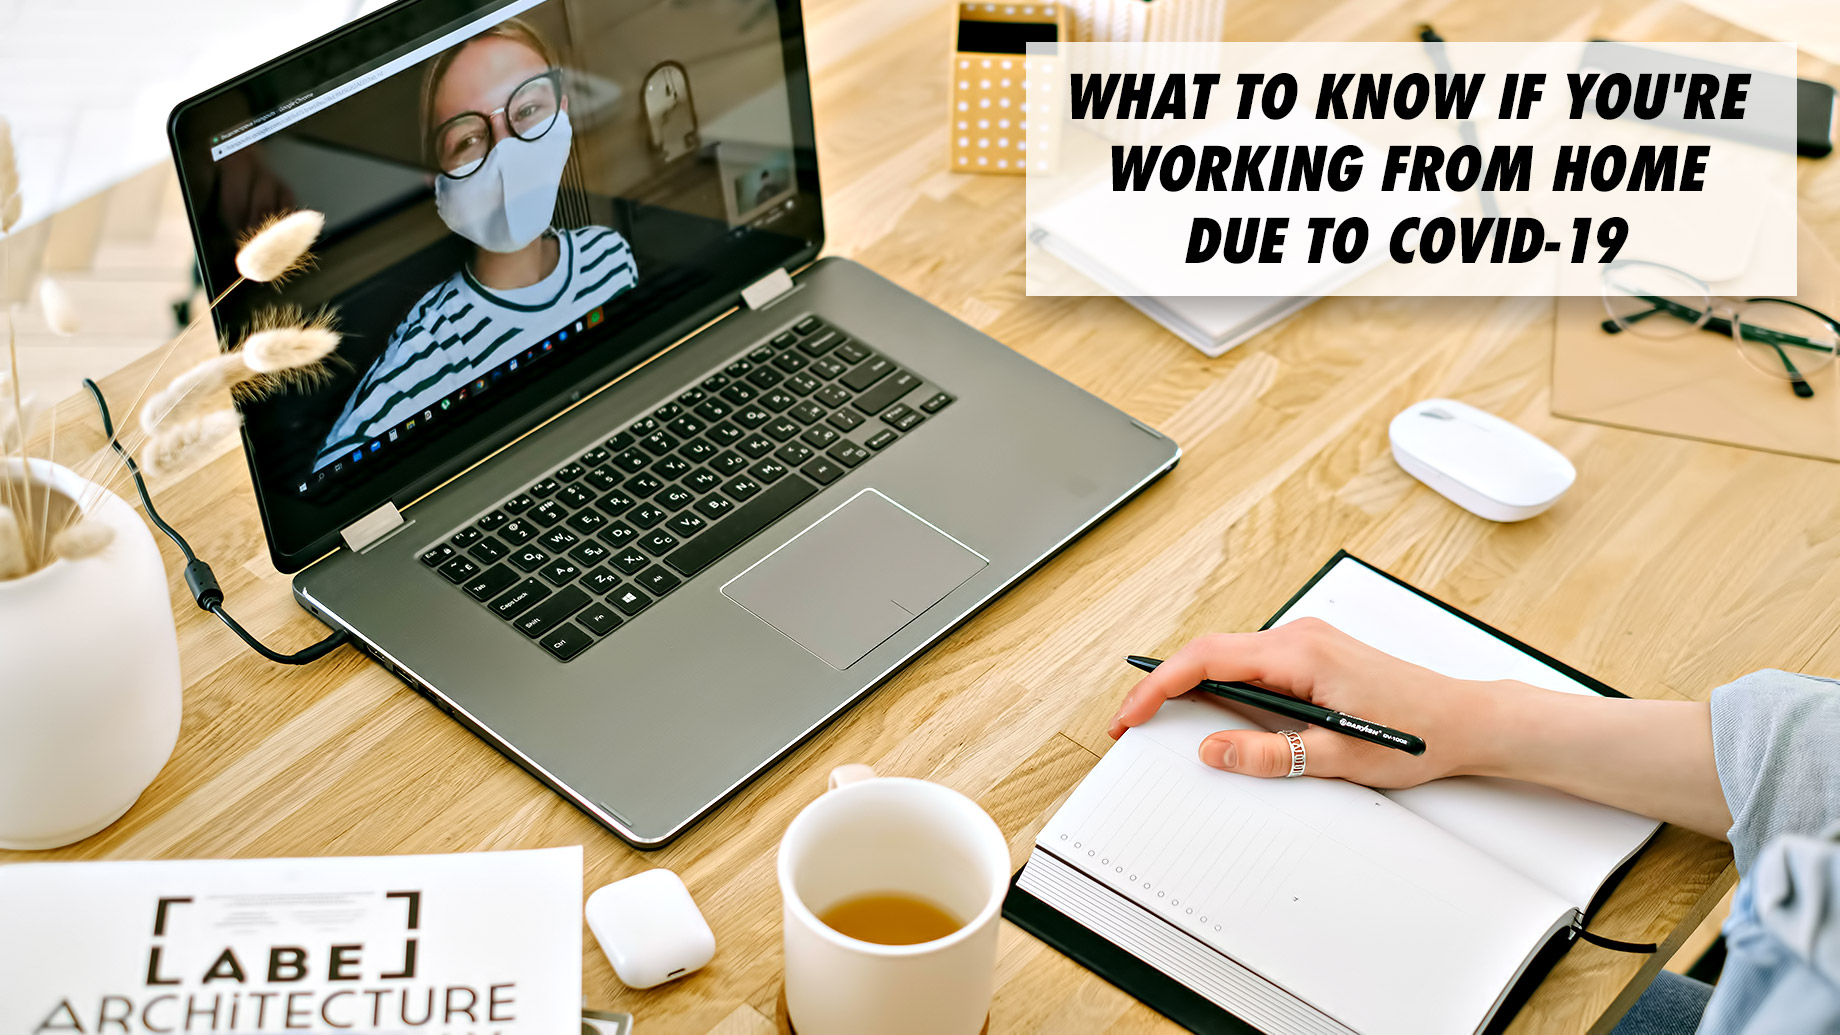 What To Know If You're Working From Home Due To COVID-19